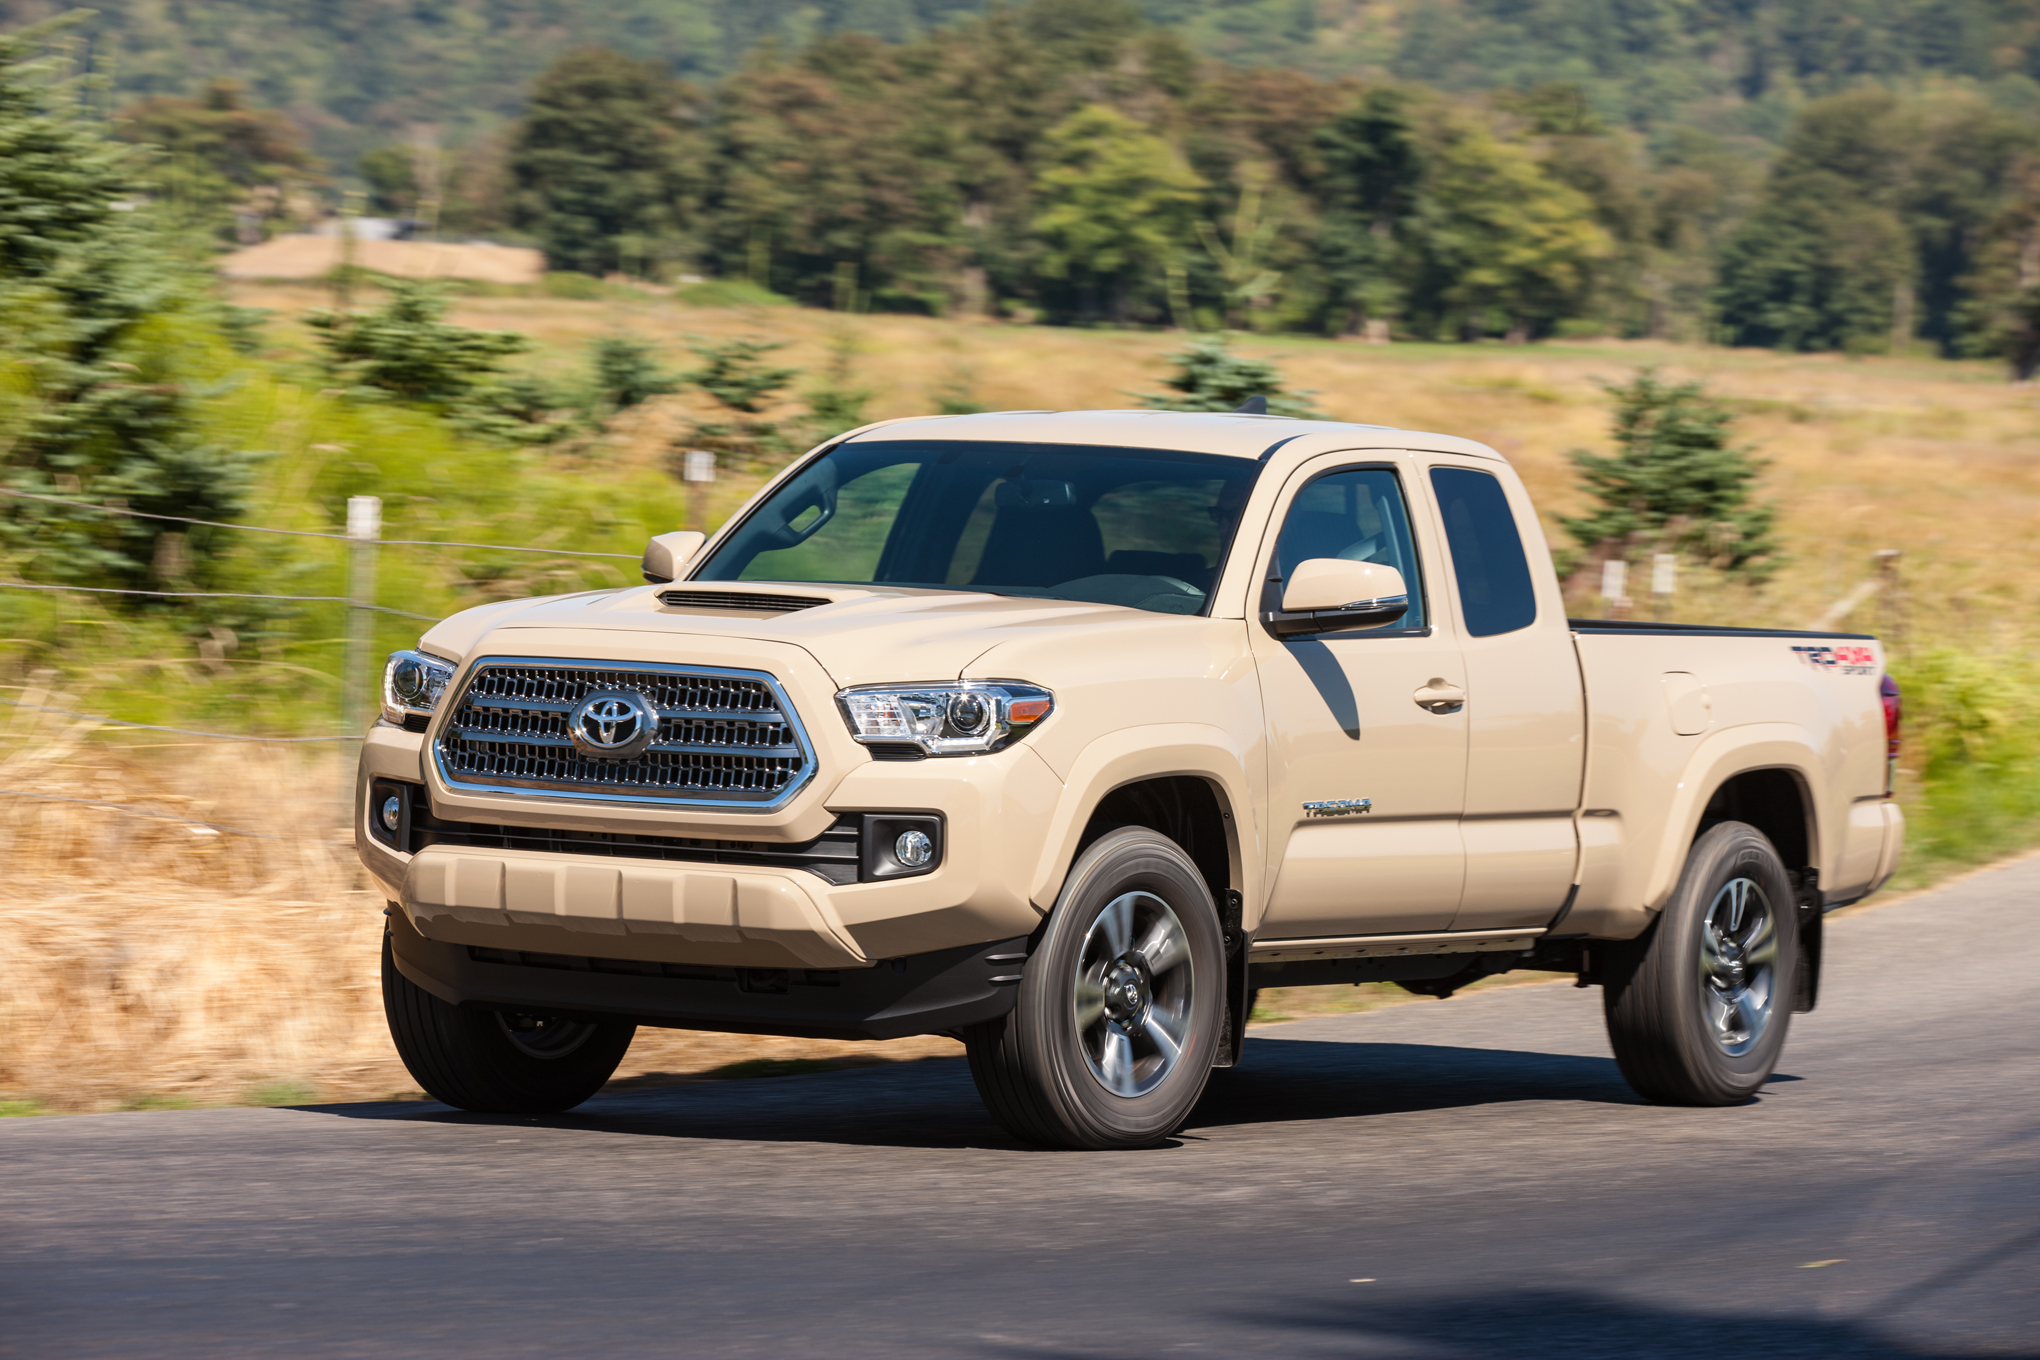 Lovely 2016 Toyota Tacoma Price Jumps To $24,200